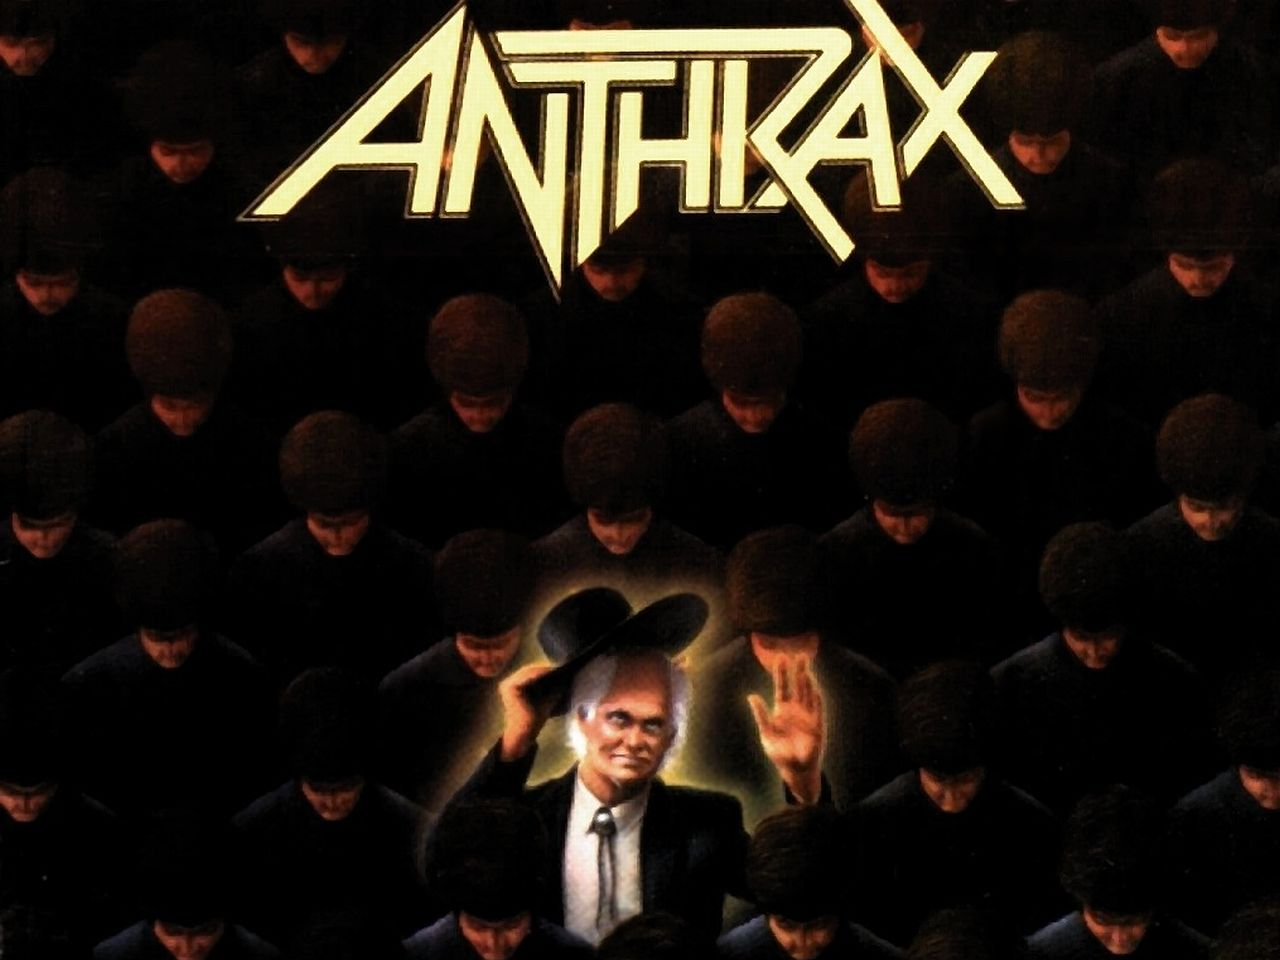 Music Anthrax Wallpaper Guitar Work in 2019 Among the living 1280x960